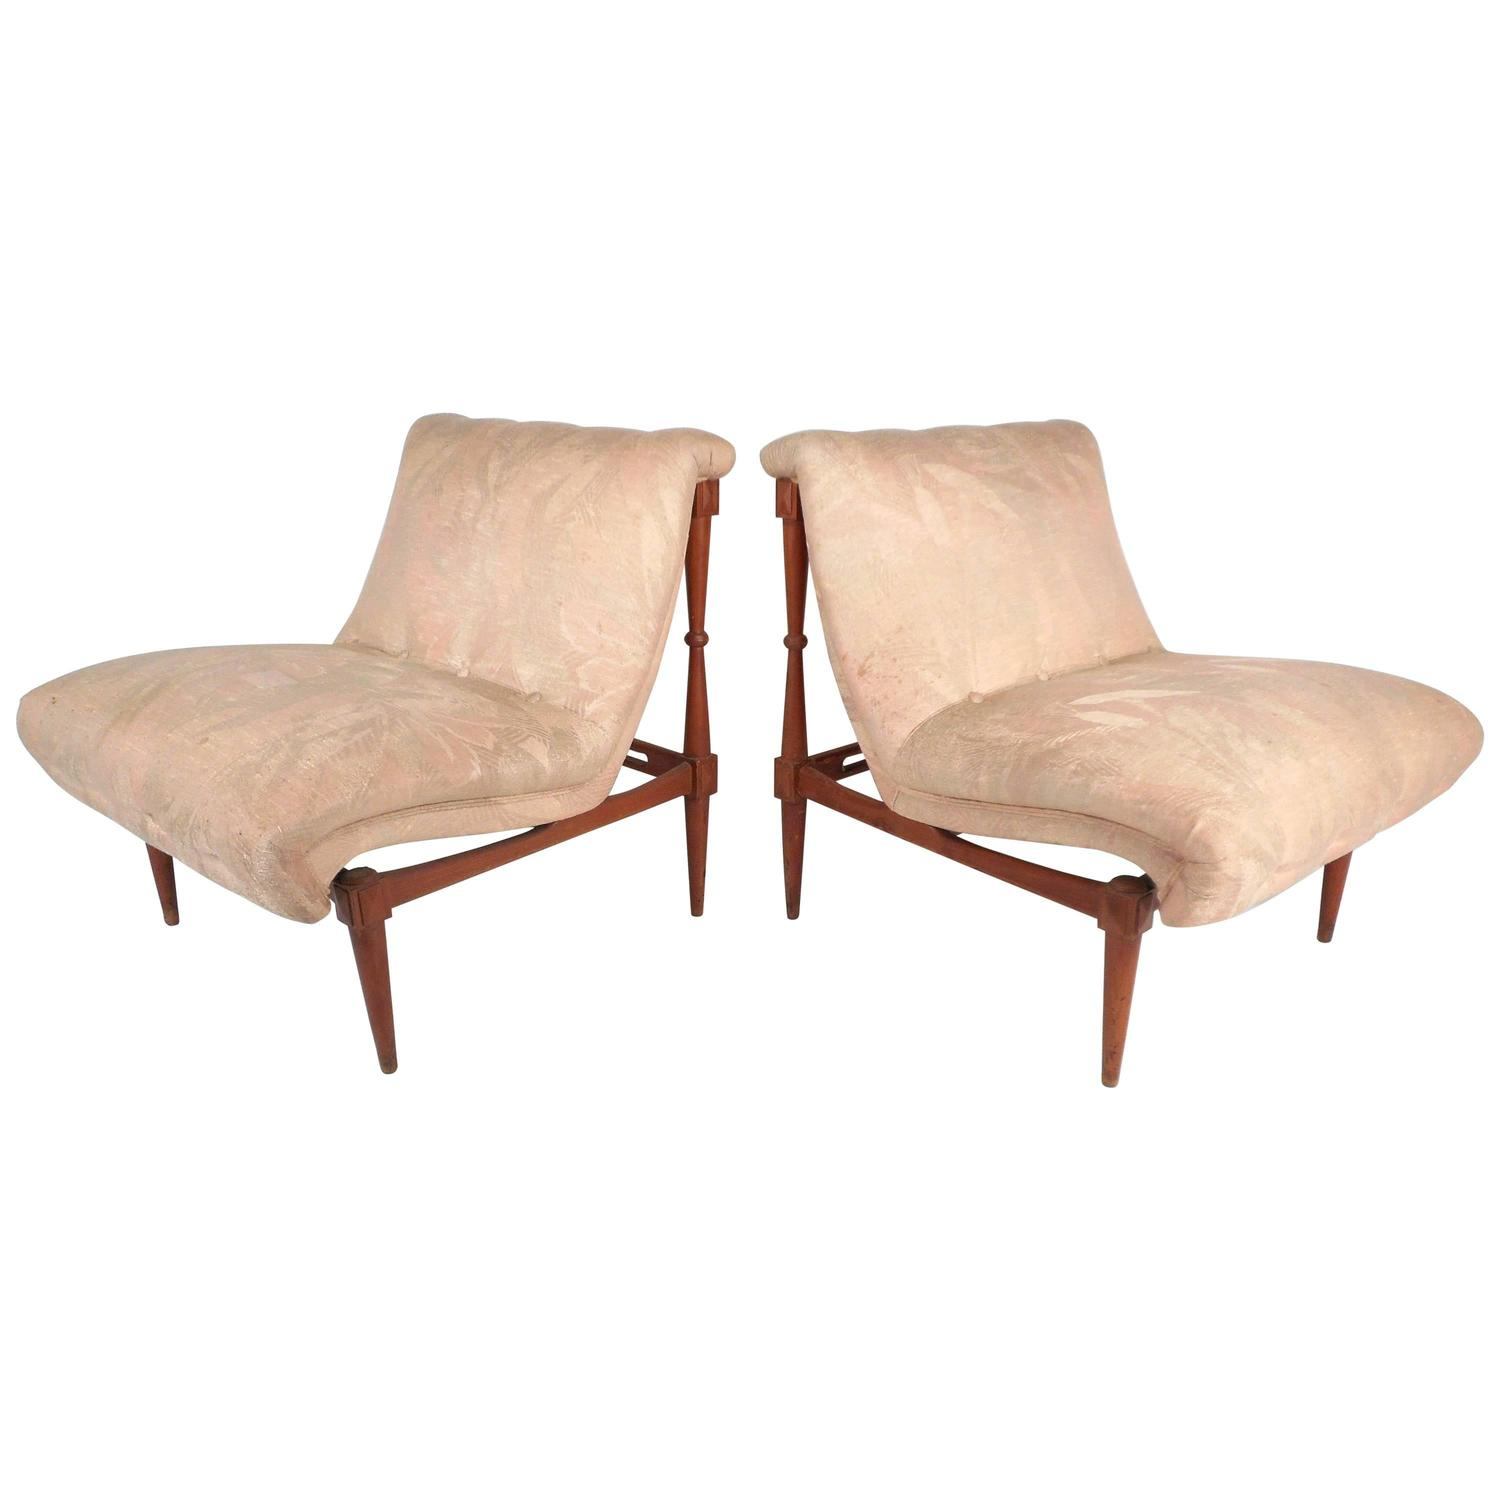 pair of mid century modern sculpted walnut slipper chairs at 1stdibs